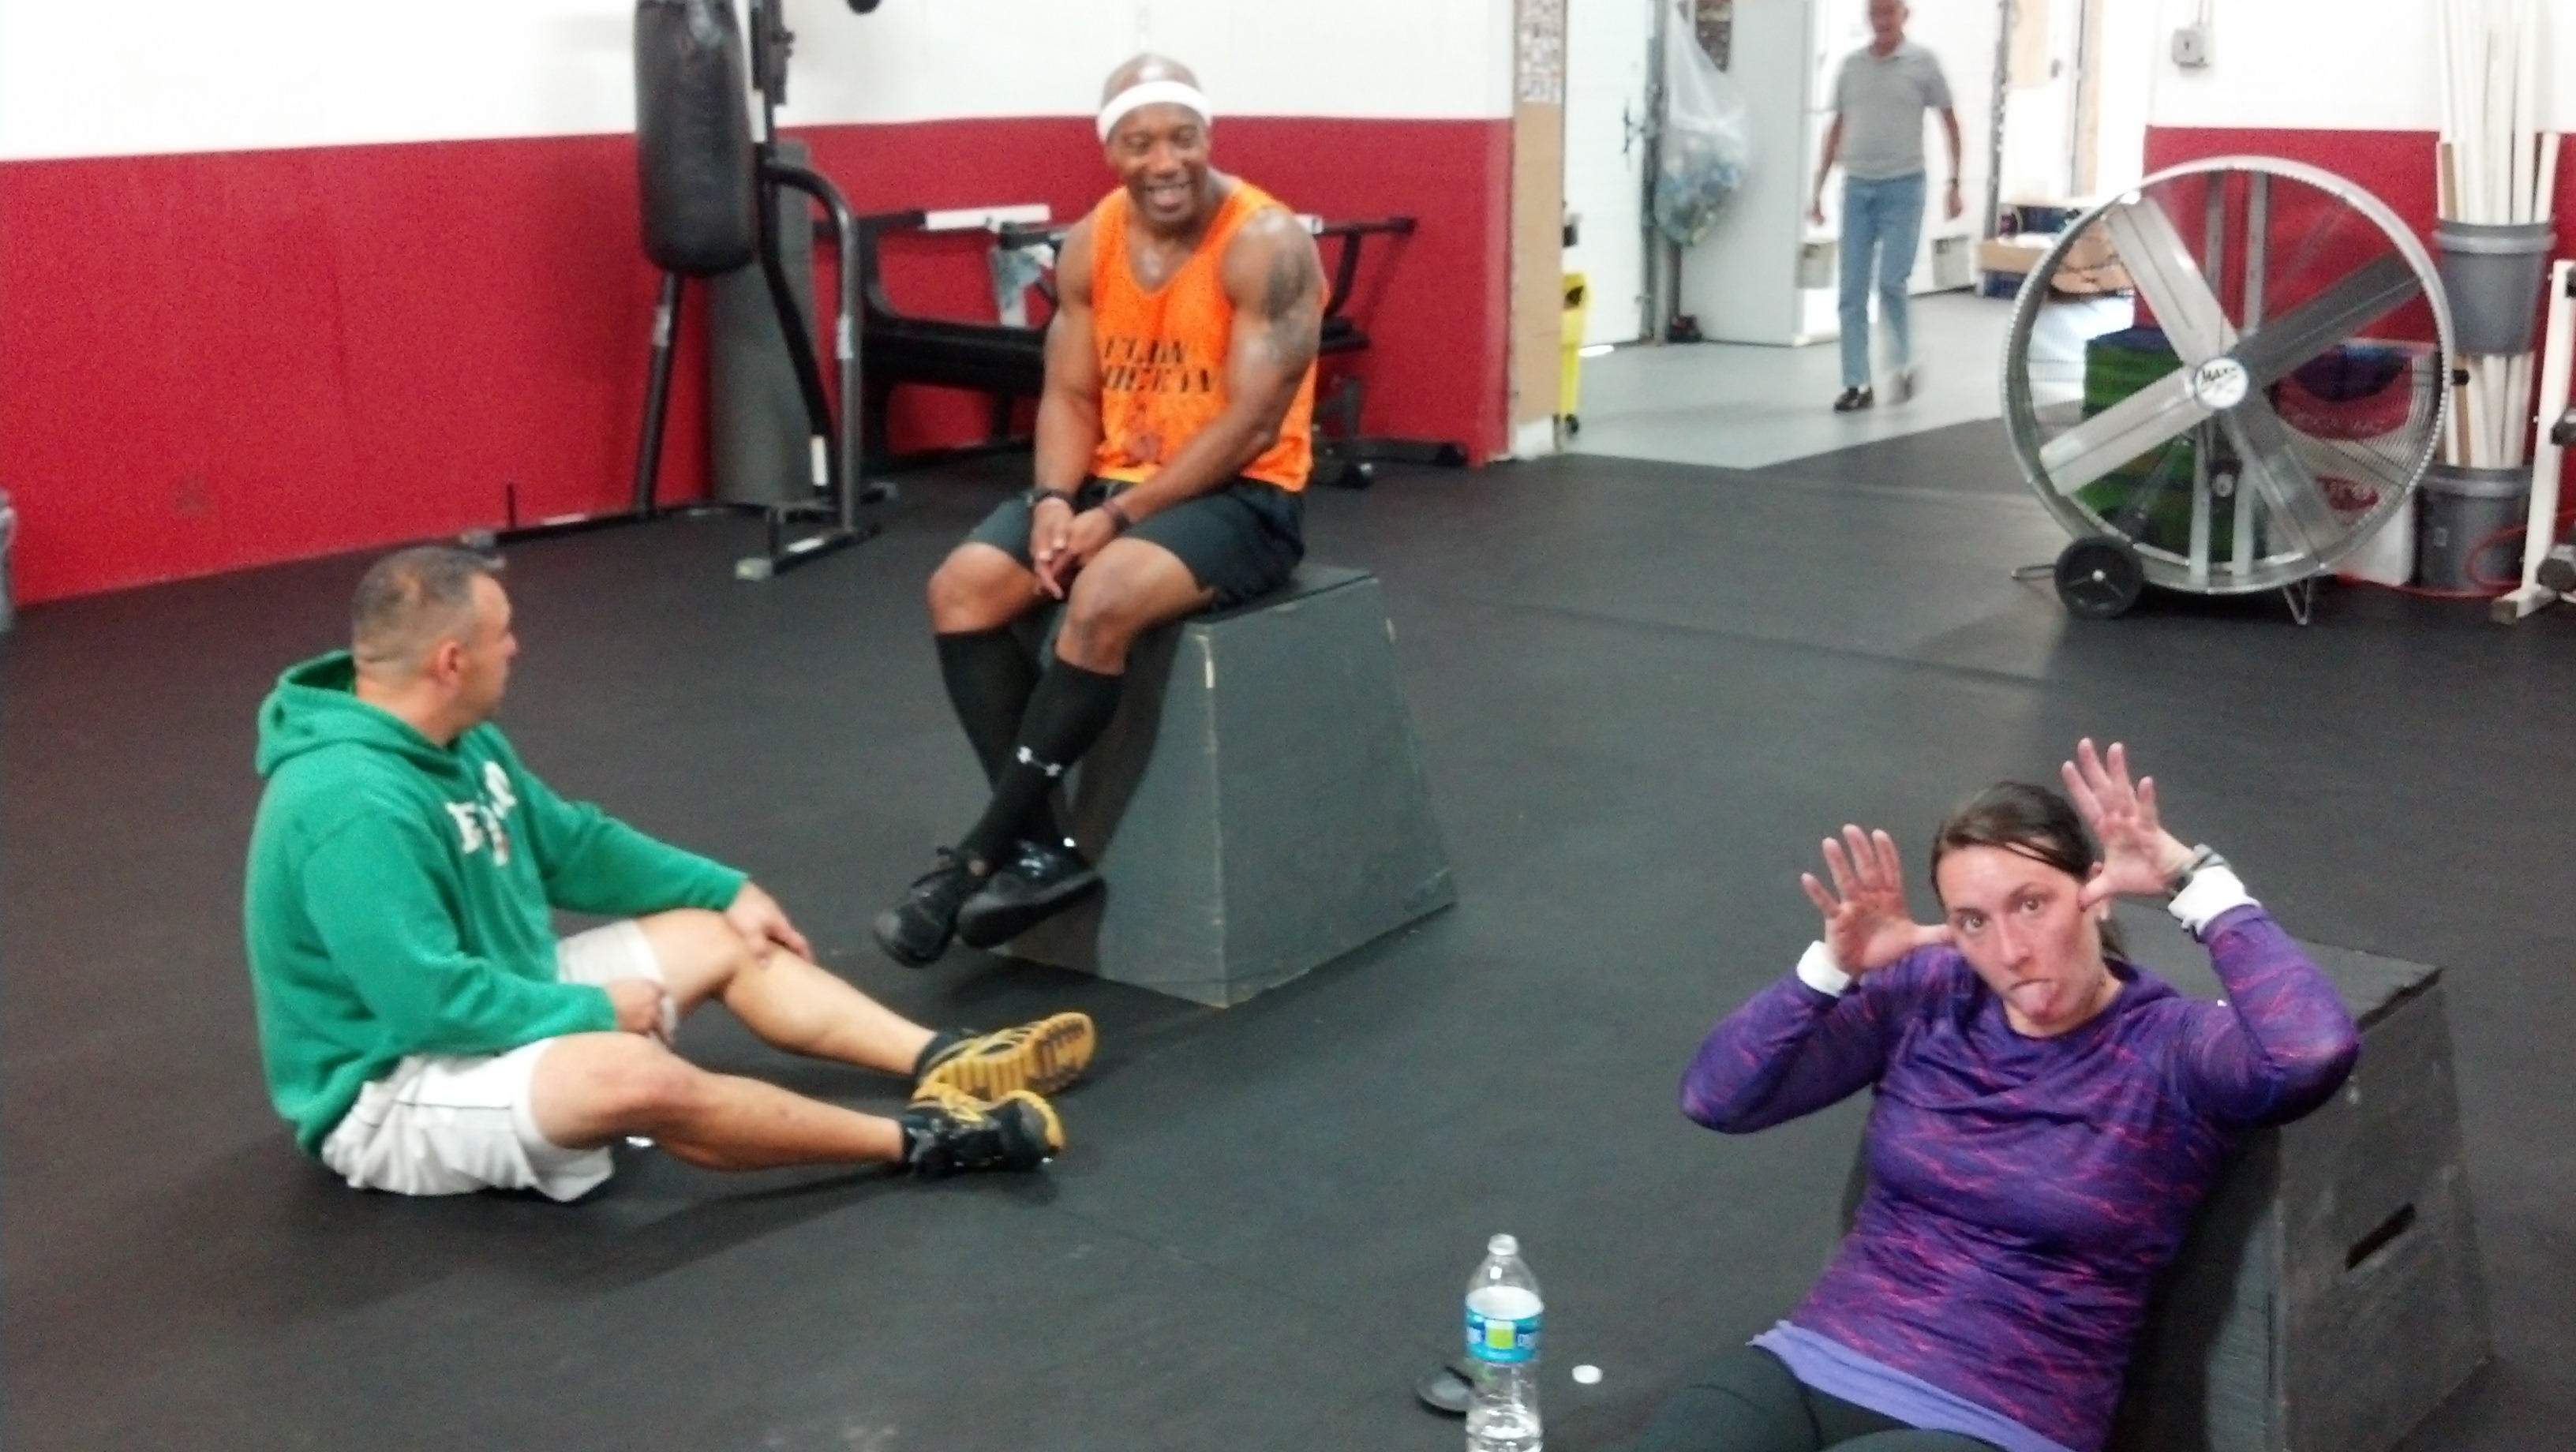 Monday, October 14 WOD